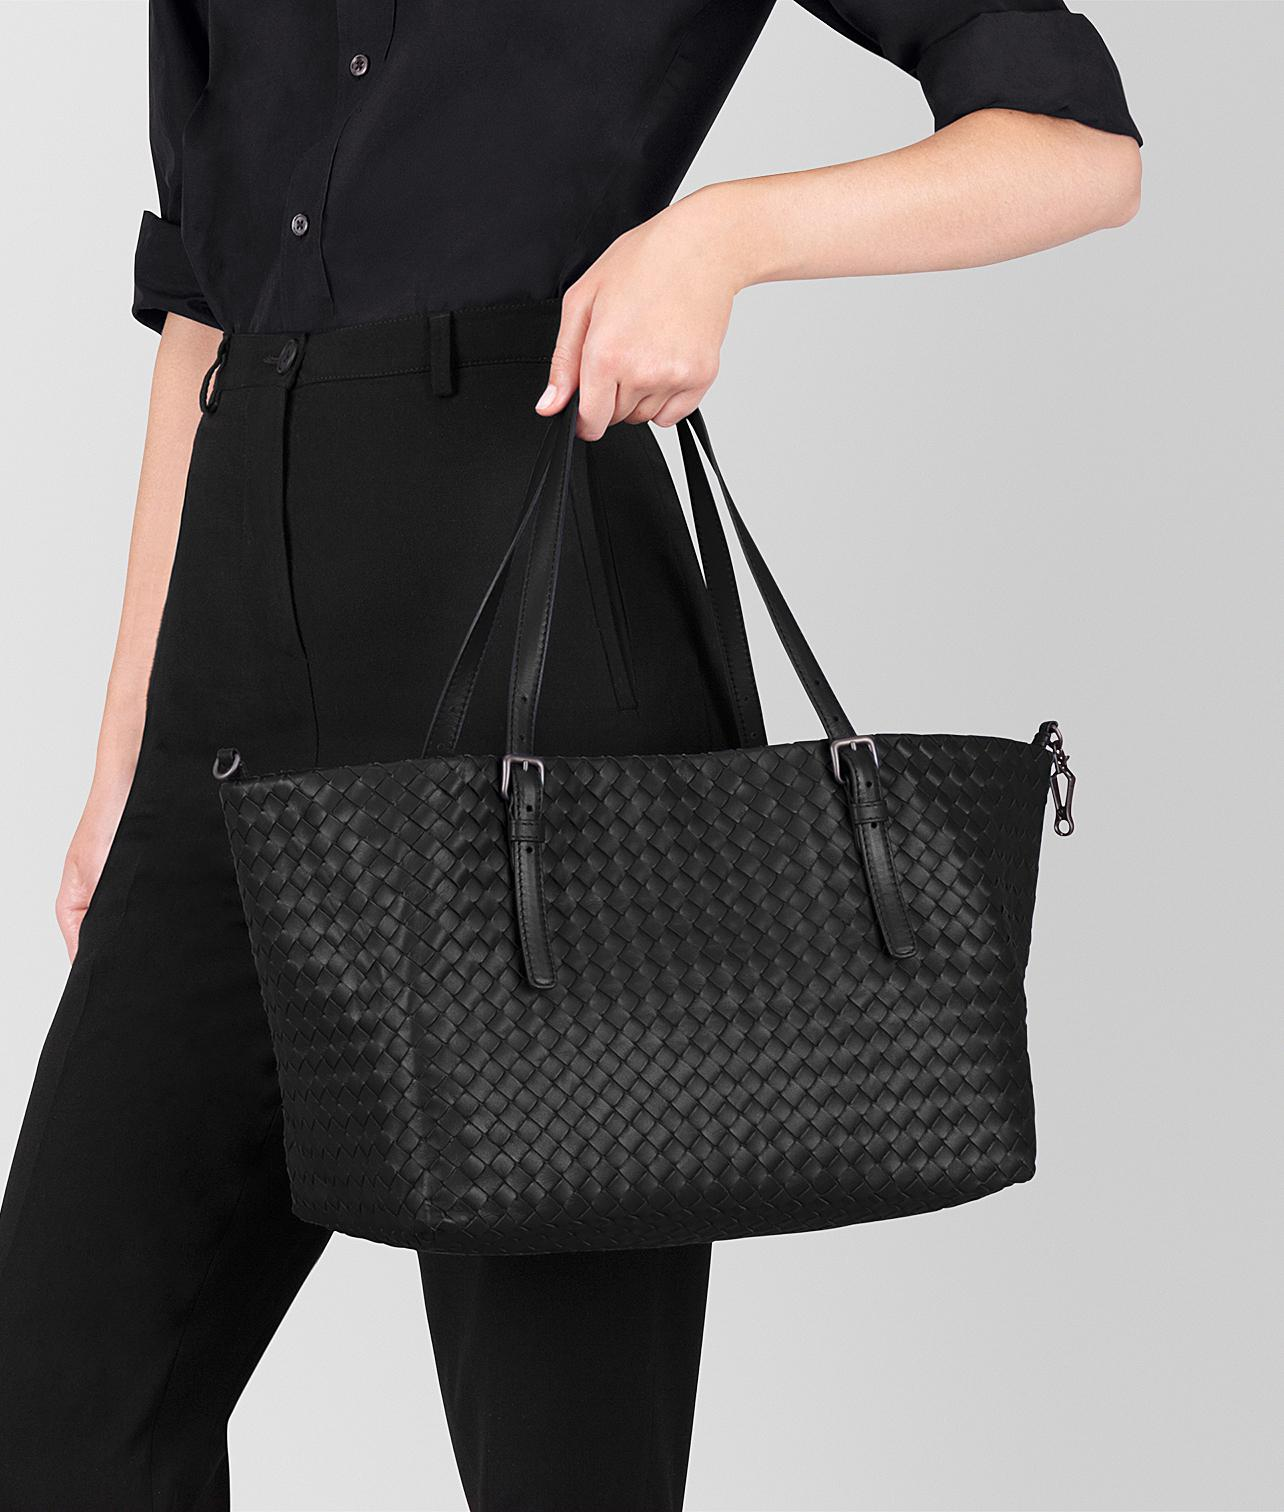 7e7082fe446c Bottega Veneta Medium Tote Bag In Nero Intrecciato Nappa in Black - Lyst